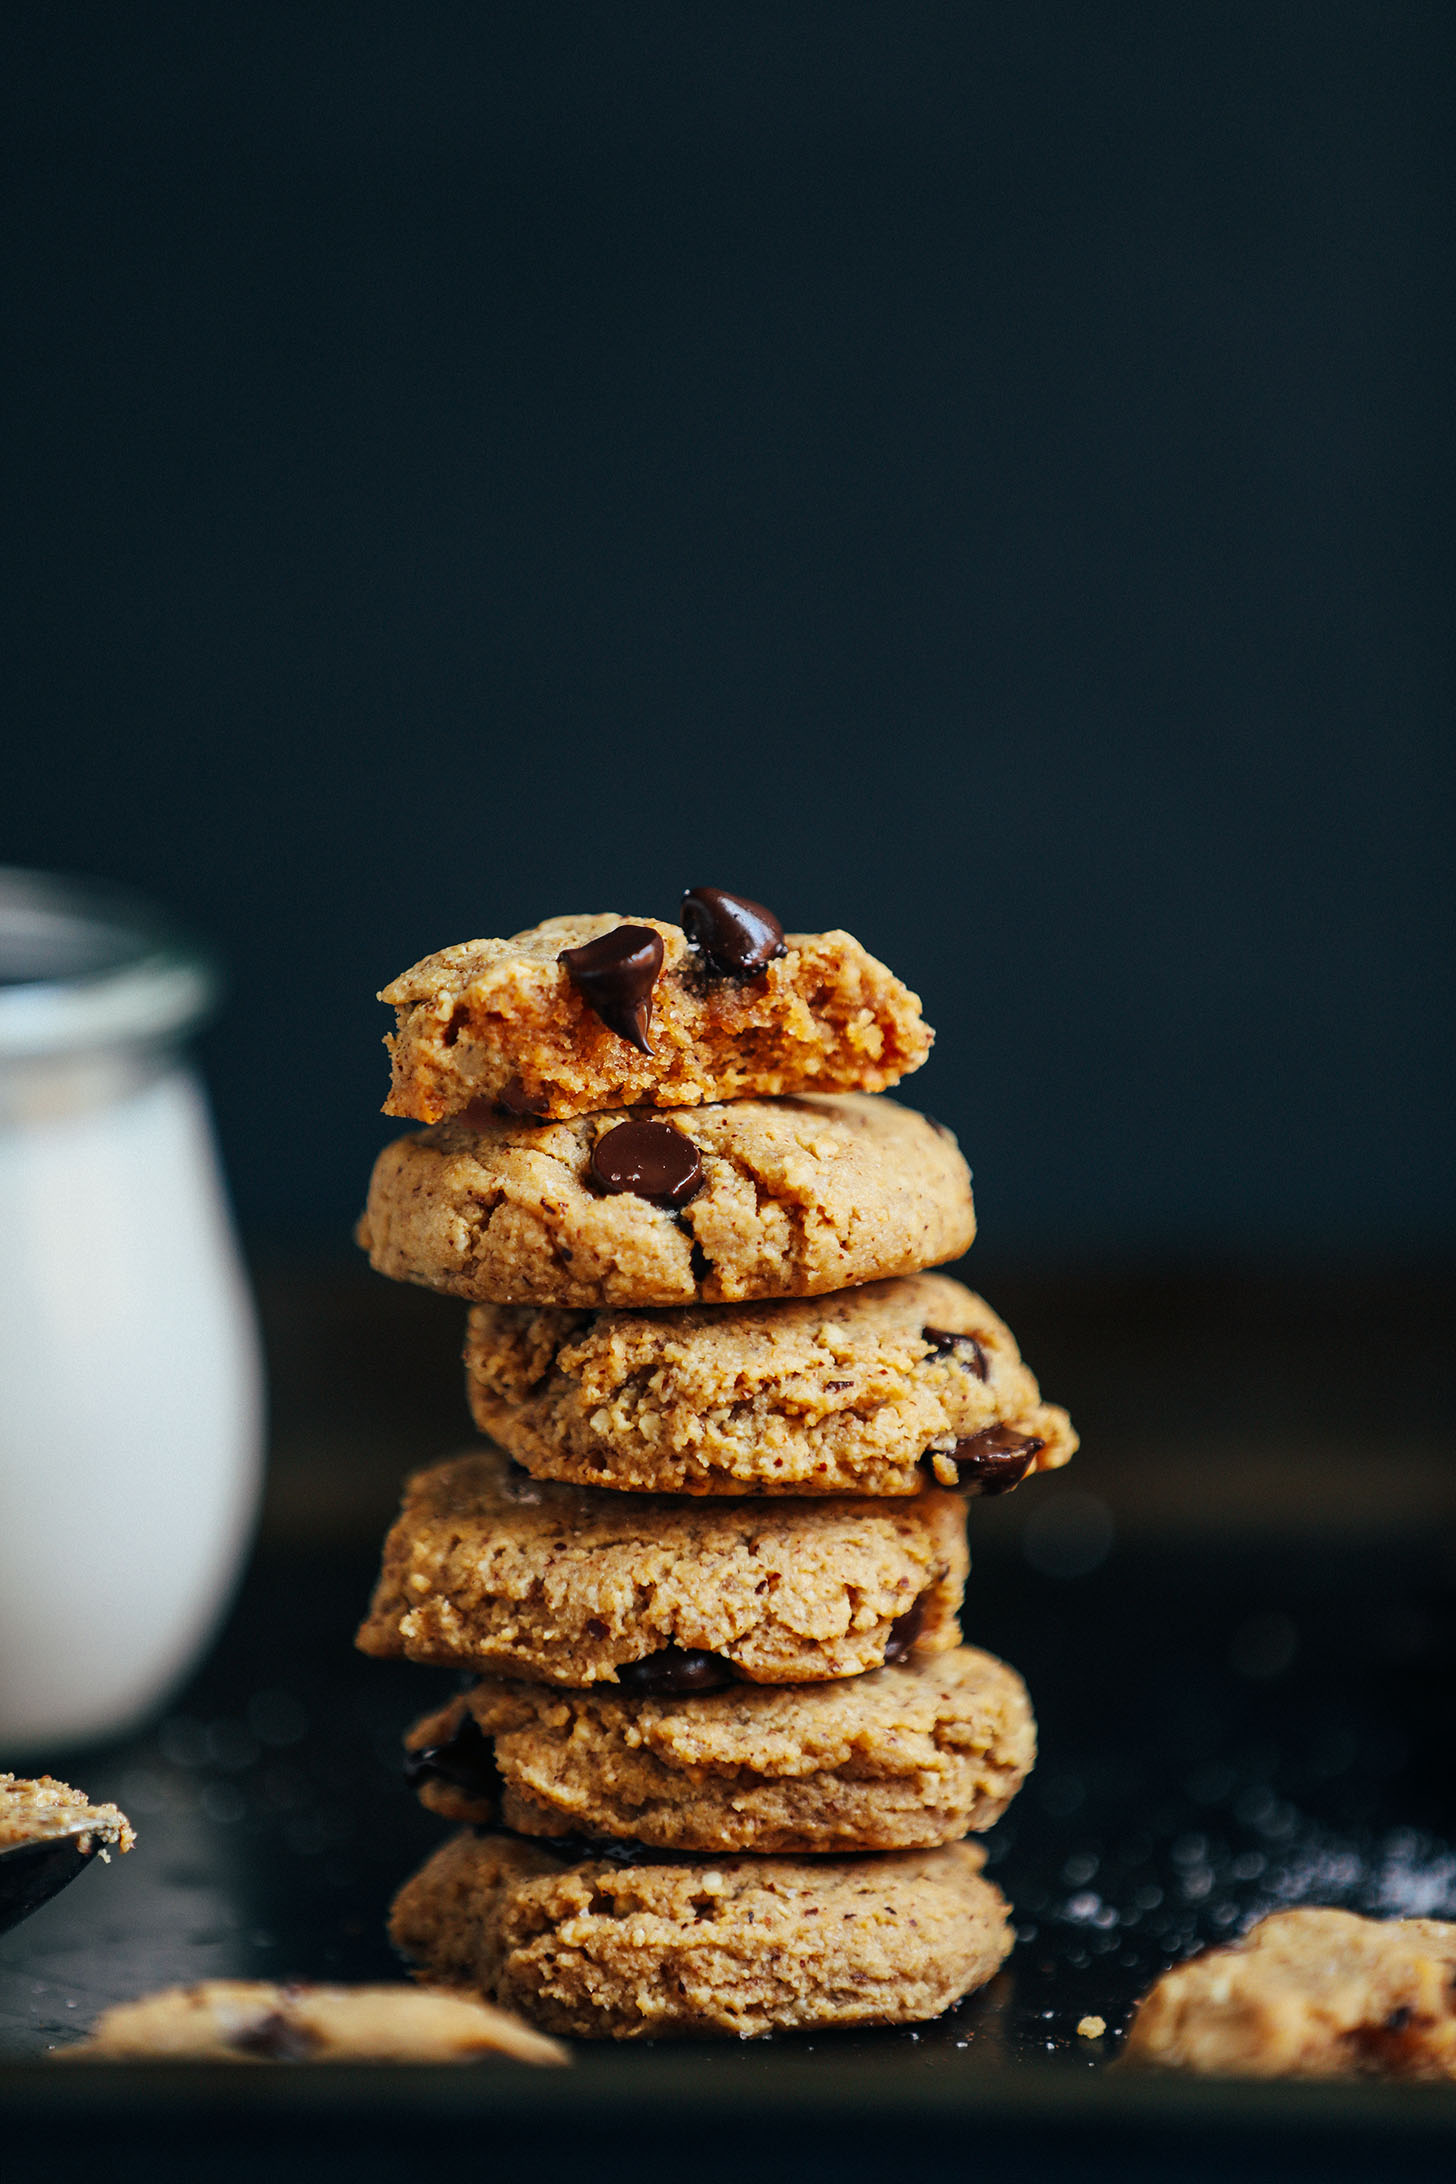 Stack of grain-free vegan low sugar Almond Butter Chocolate Chip Cookies